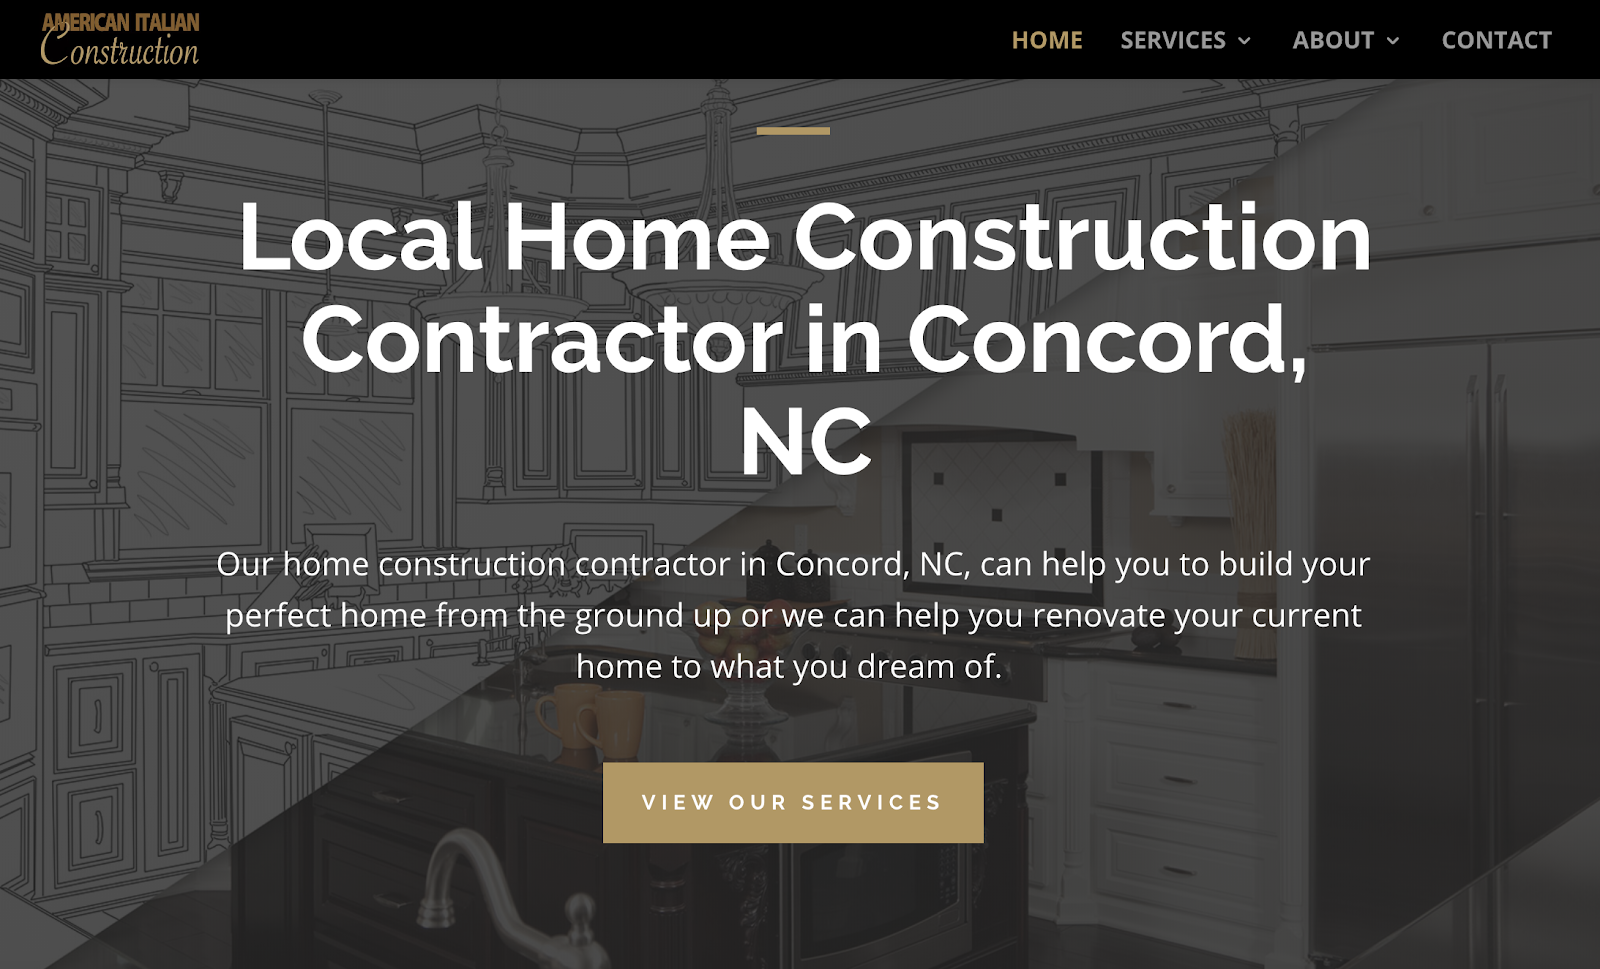 american italian construction side hustle website